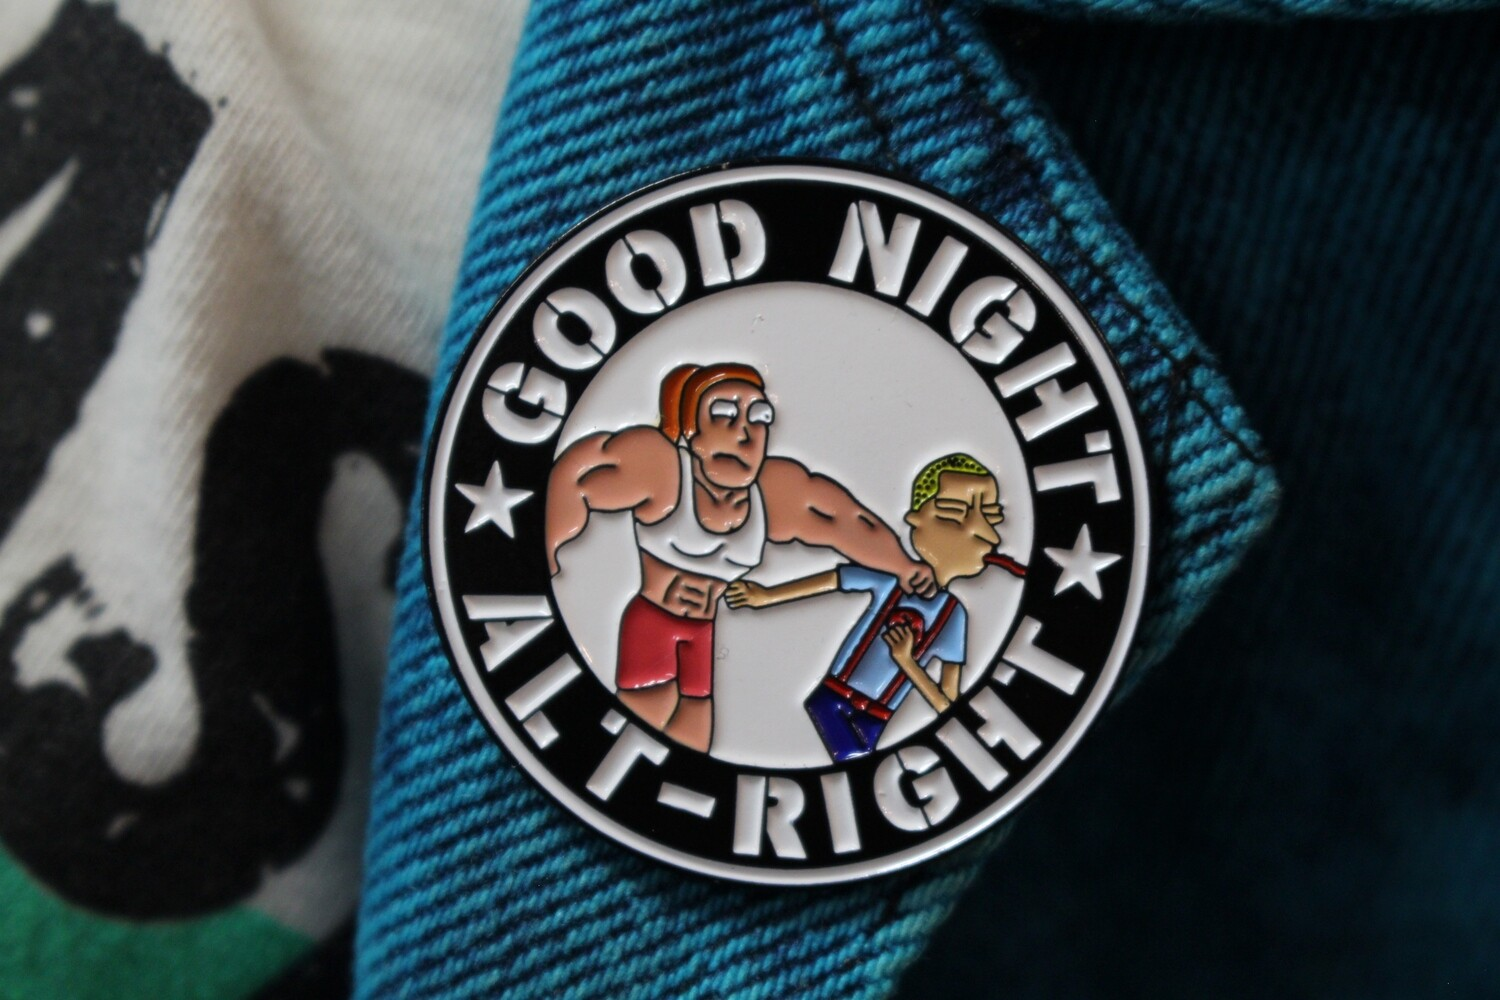 Summer Good Night Alt-Right Pin